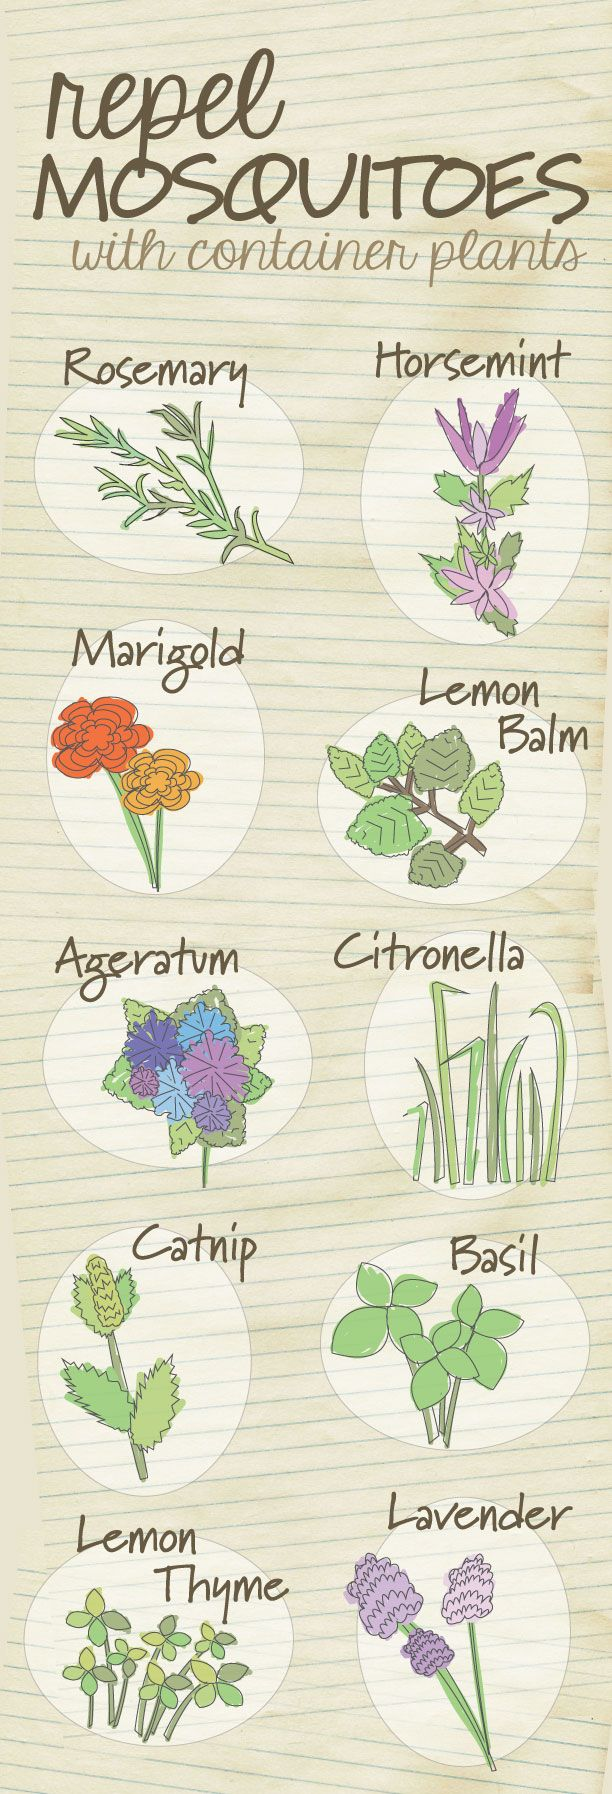 10 plants that help to repel mosquitoes